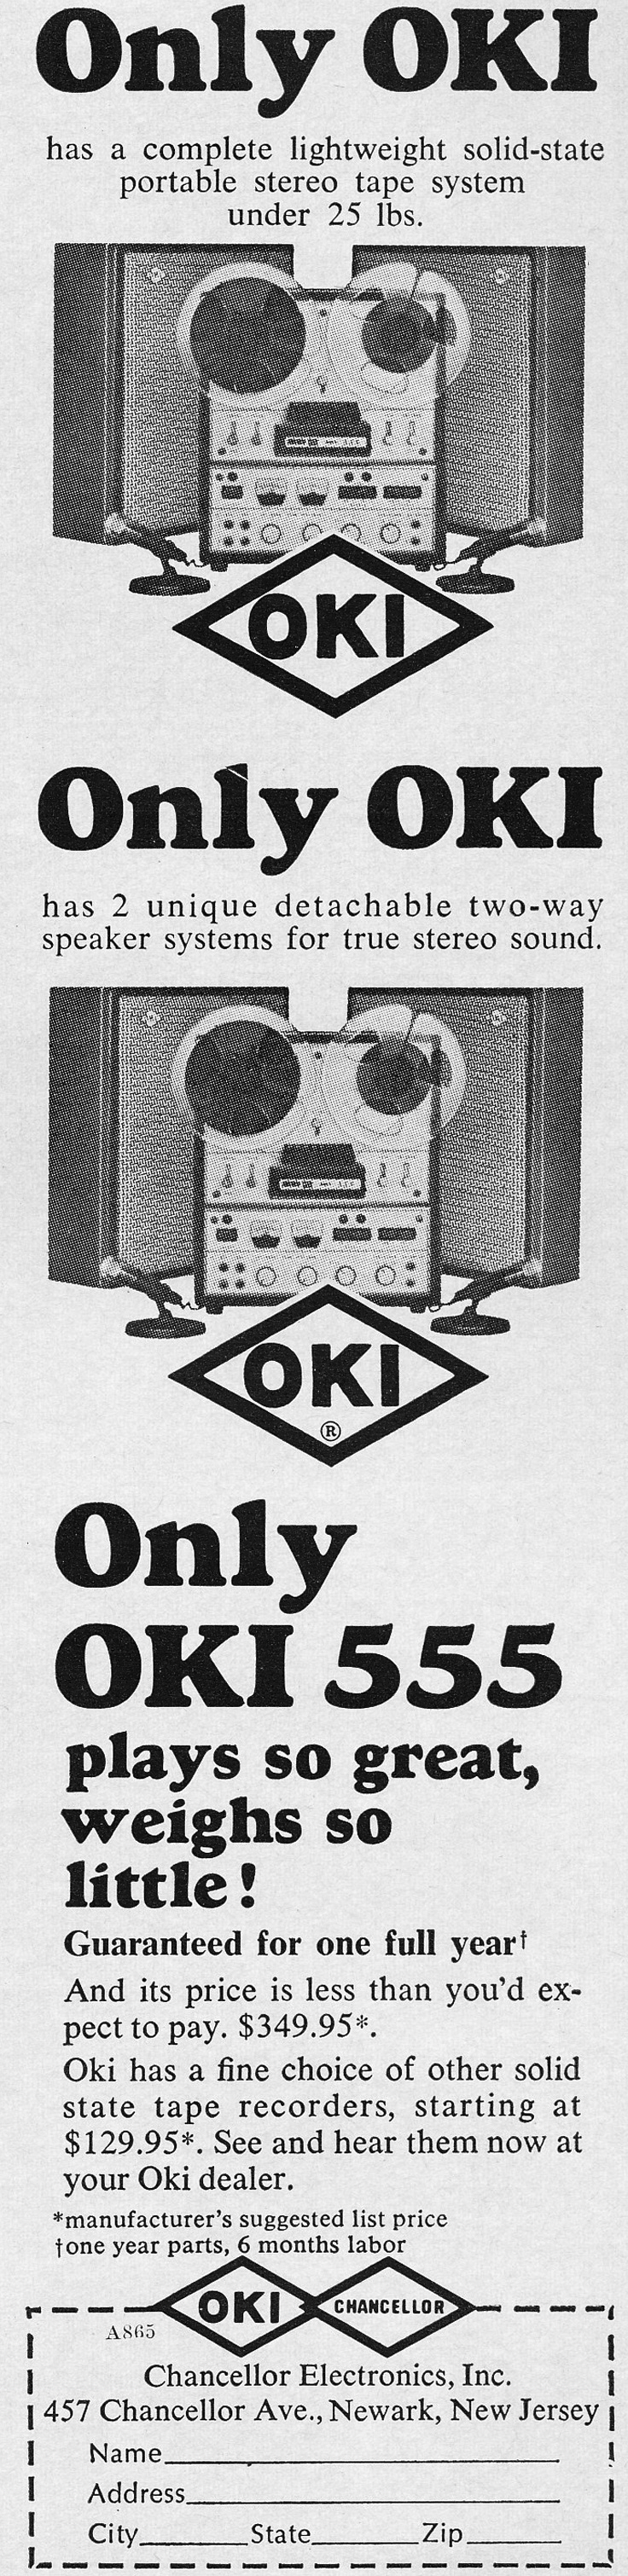 Oki reel to reel tape recorder ad in the Reel2ReelTexas.com / Museum of Magnetic Sound Recording museum vintage recording collection